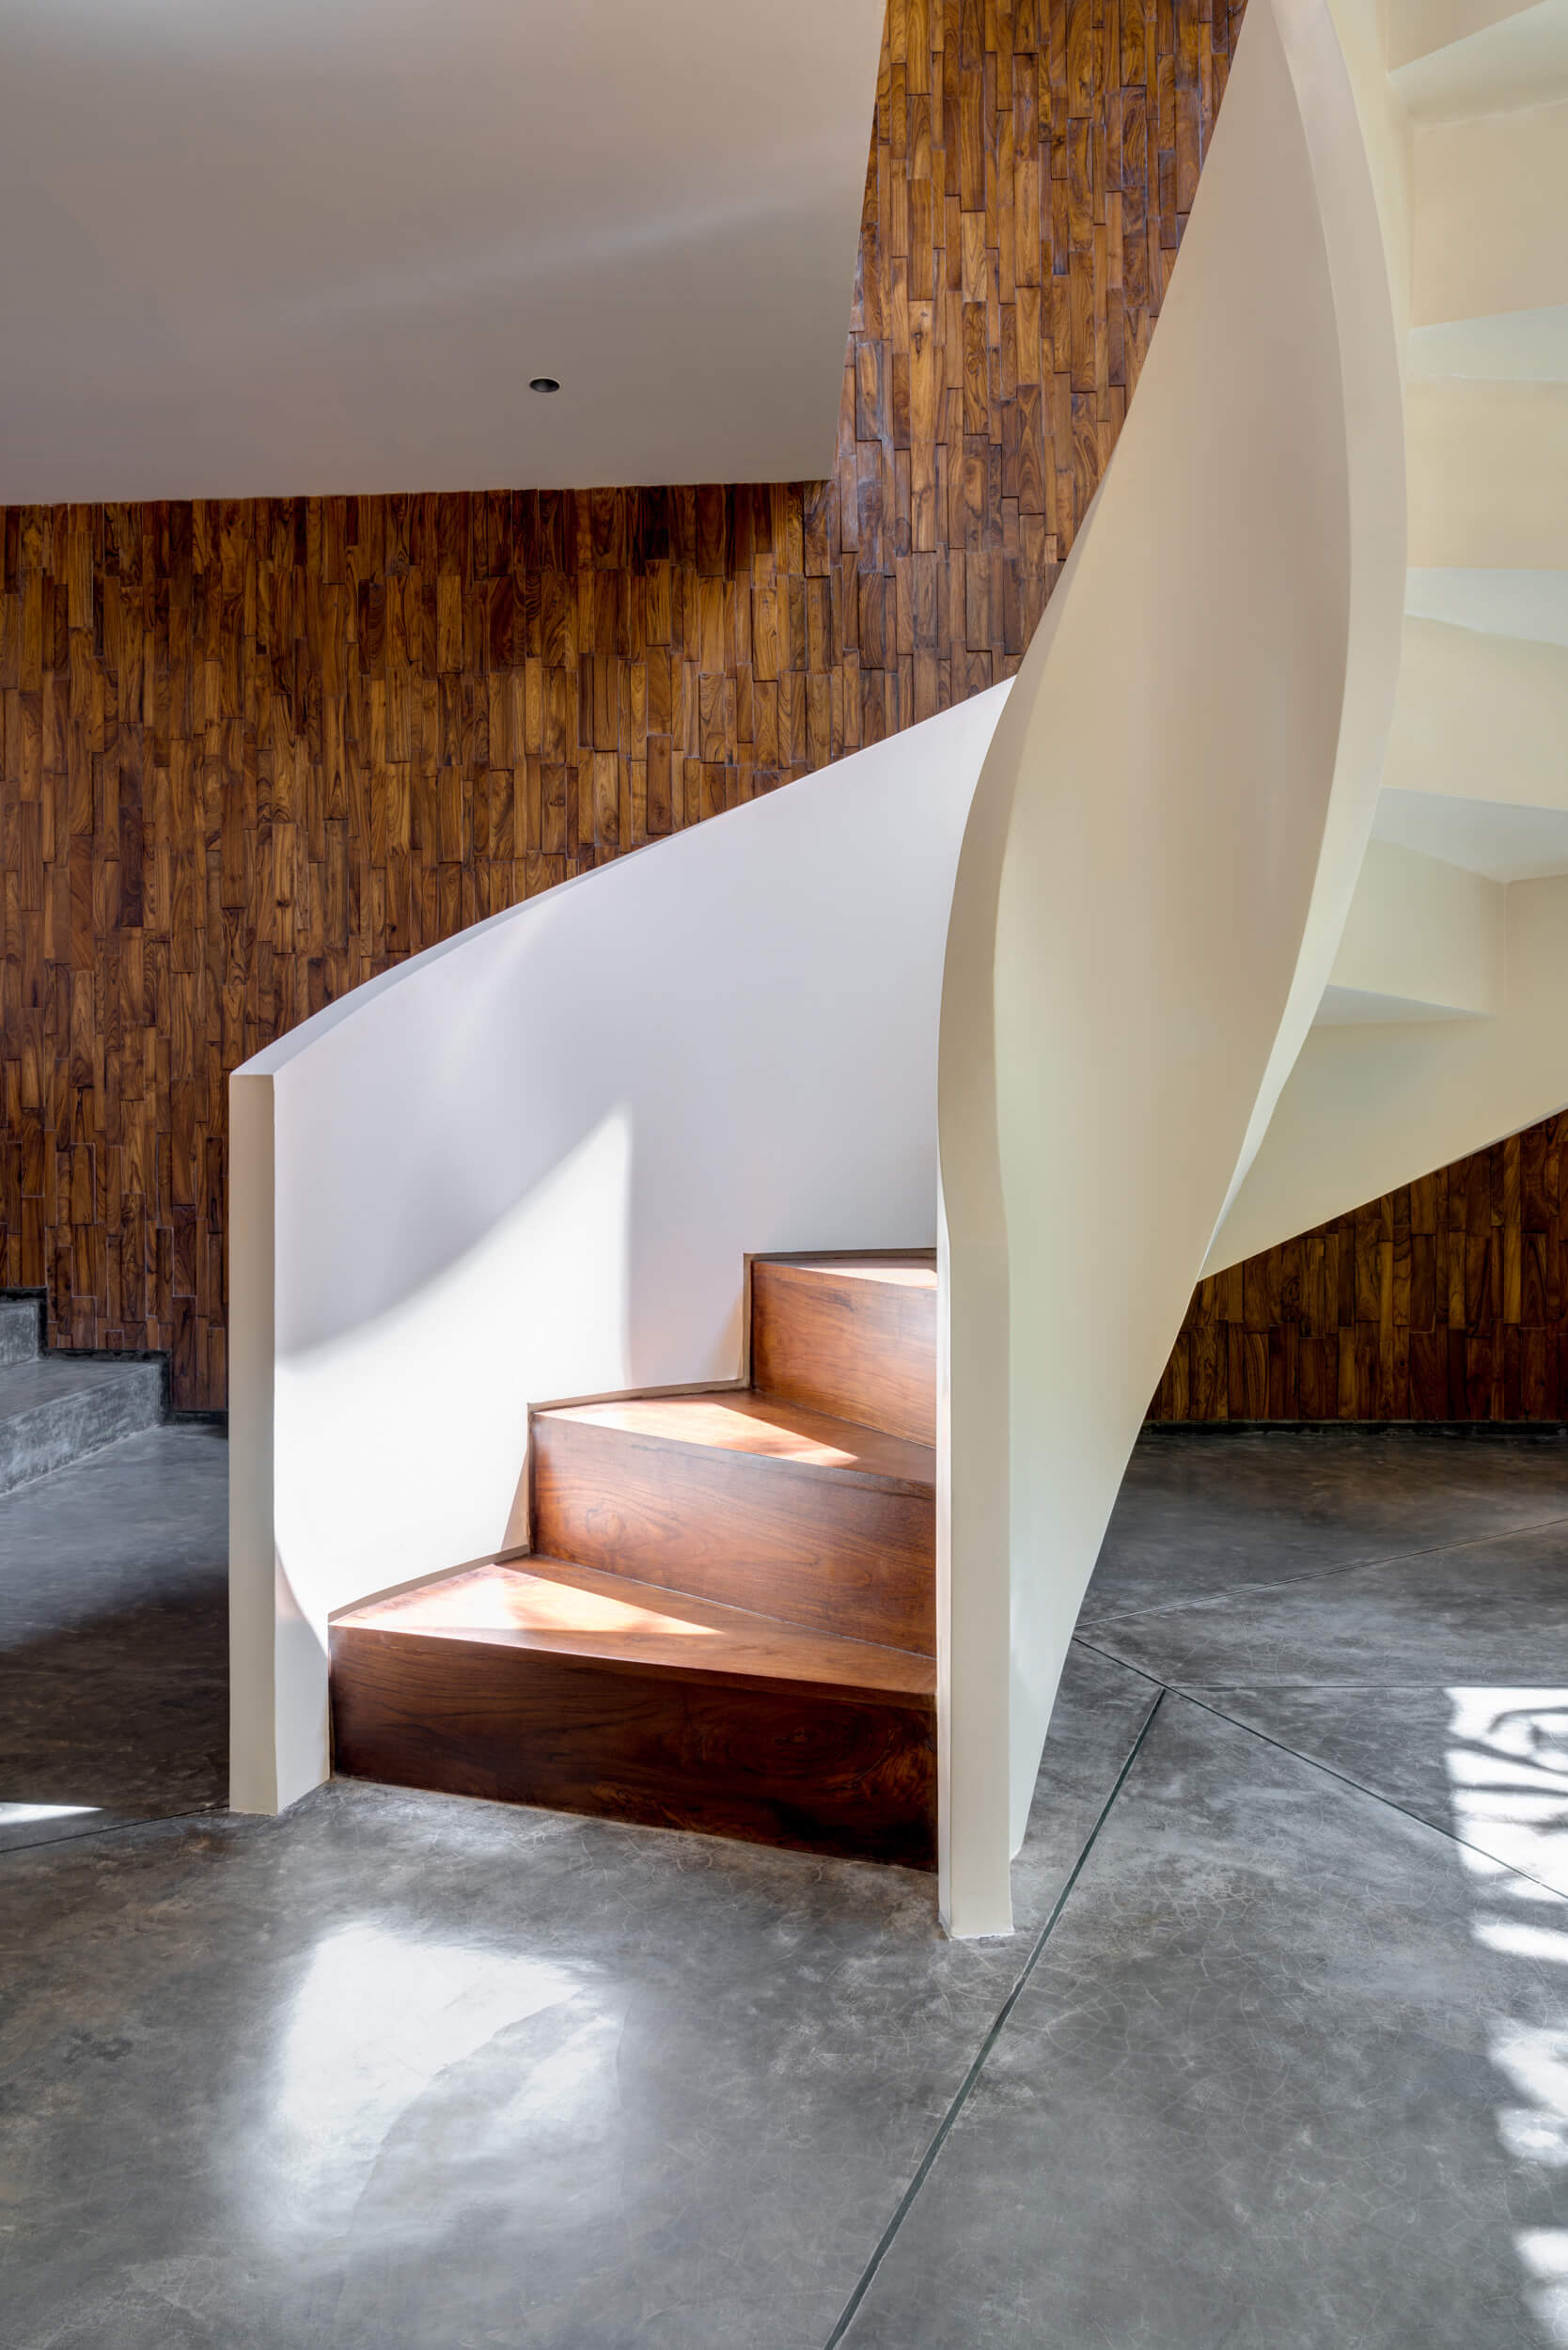 Interior view showing teak wood walls and spiral staircase of Terra house | Lua and Terra Si-oul villas by Kriss Real Estate and SAV architects | STIRworld